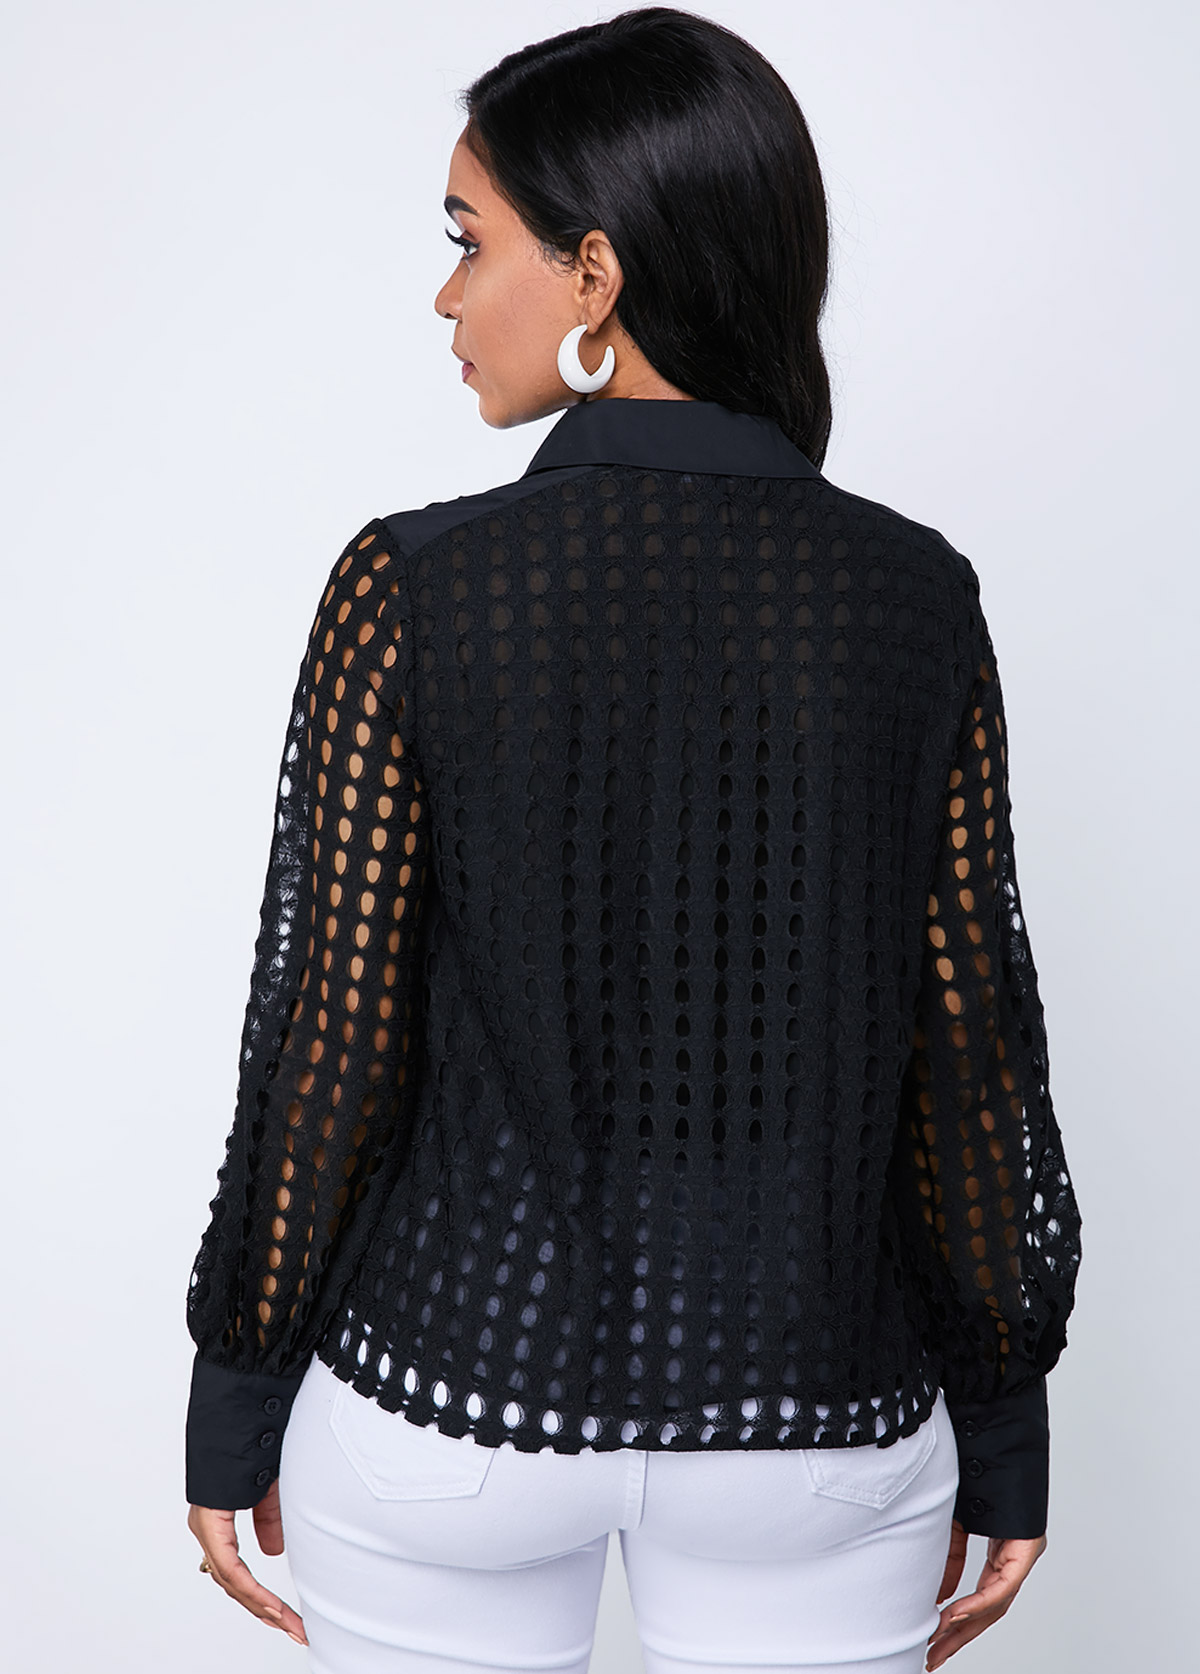 Lace Lantern Sleeve Button Up Blouse